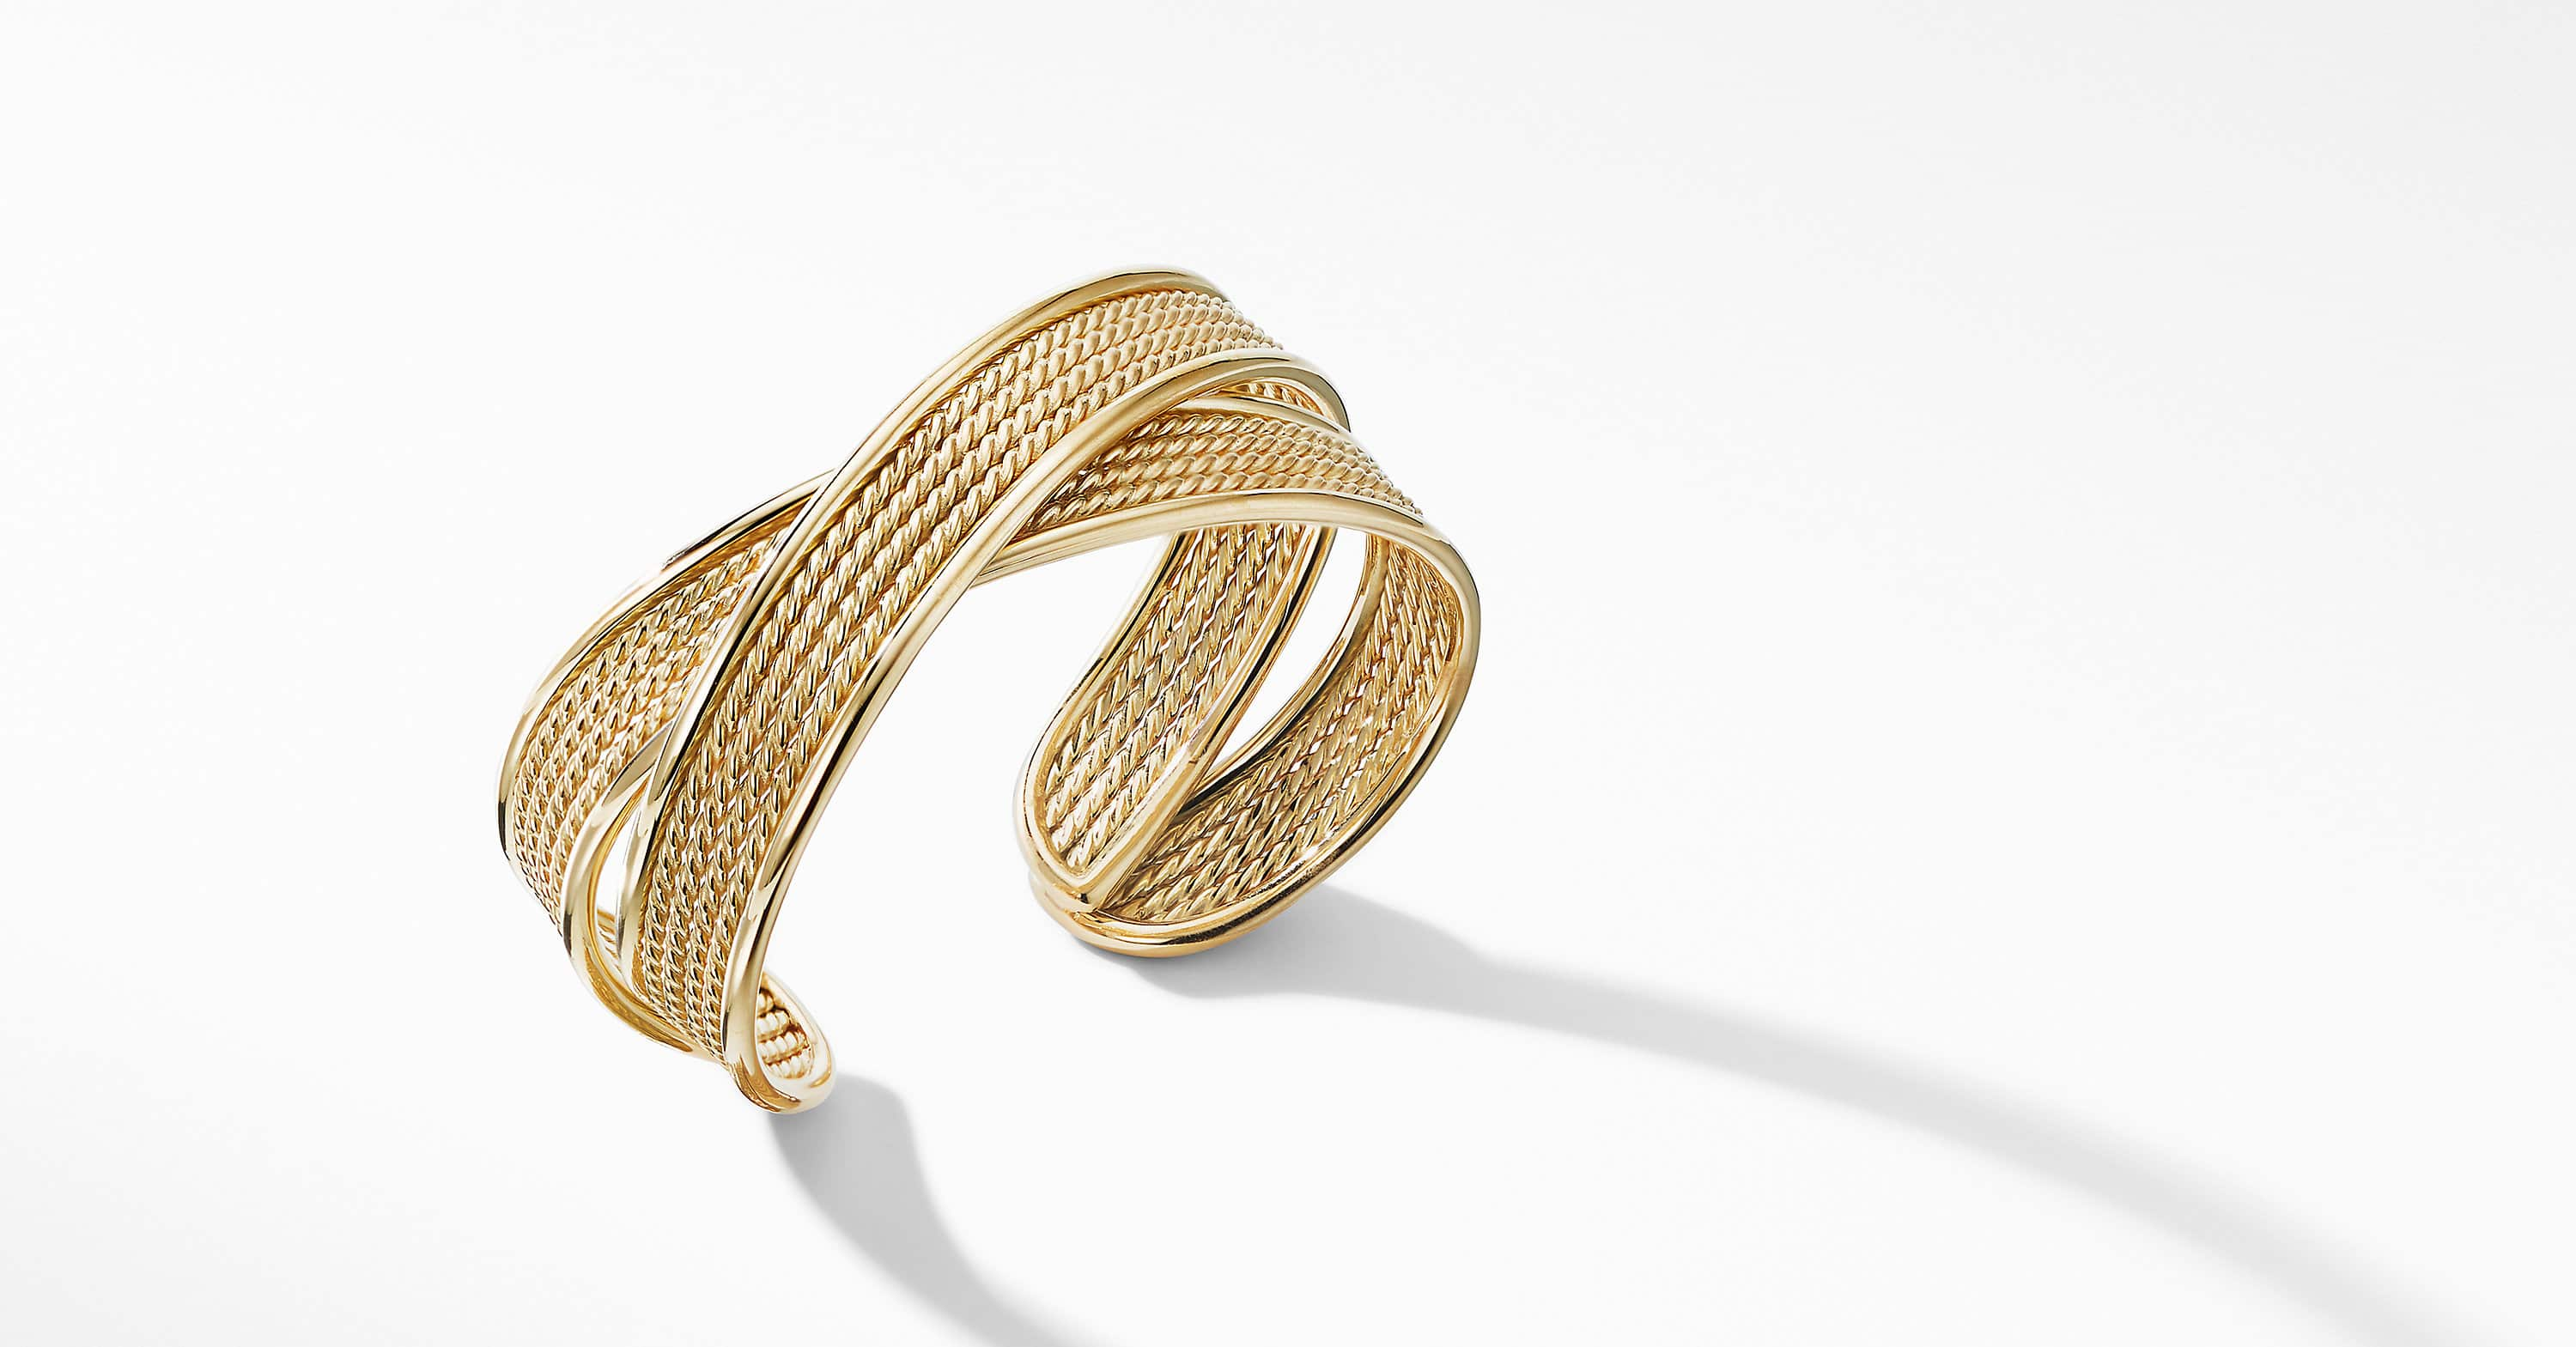 DY Origami Narrow Crossover Cuff Bracelet in 18K Yellow Gold